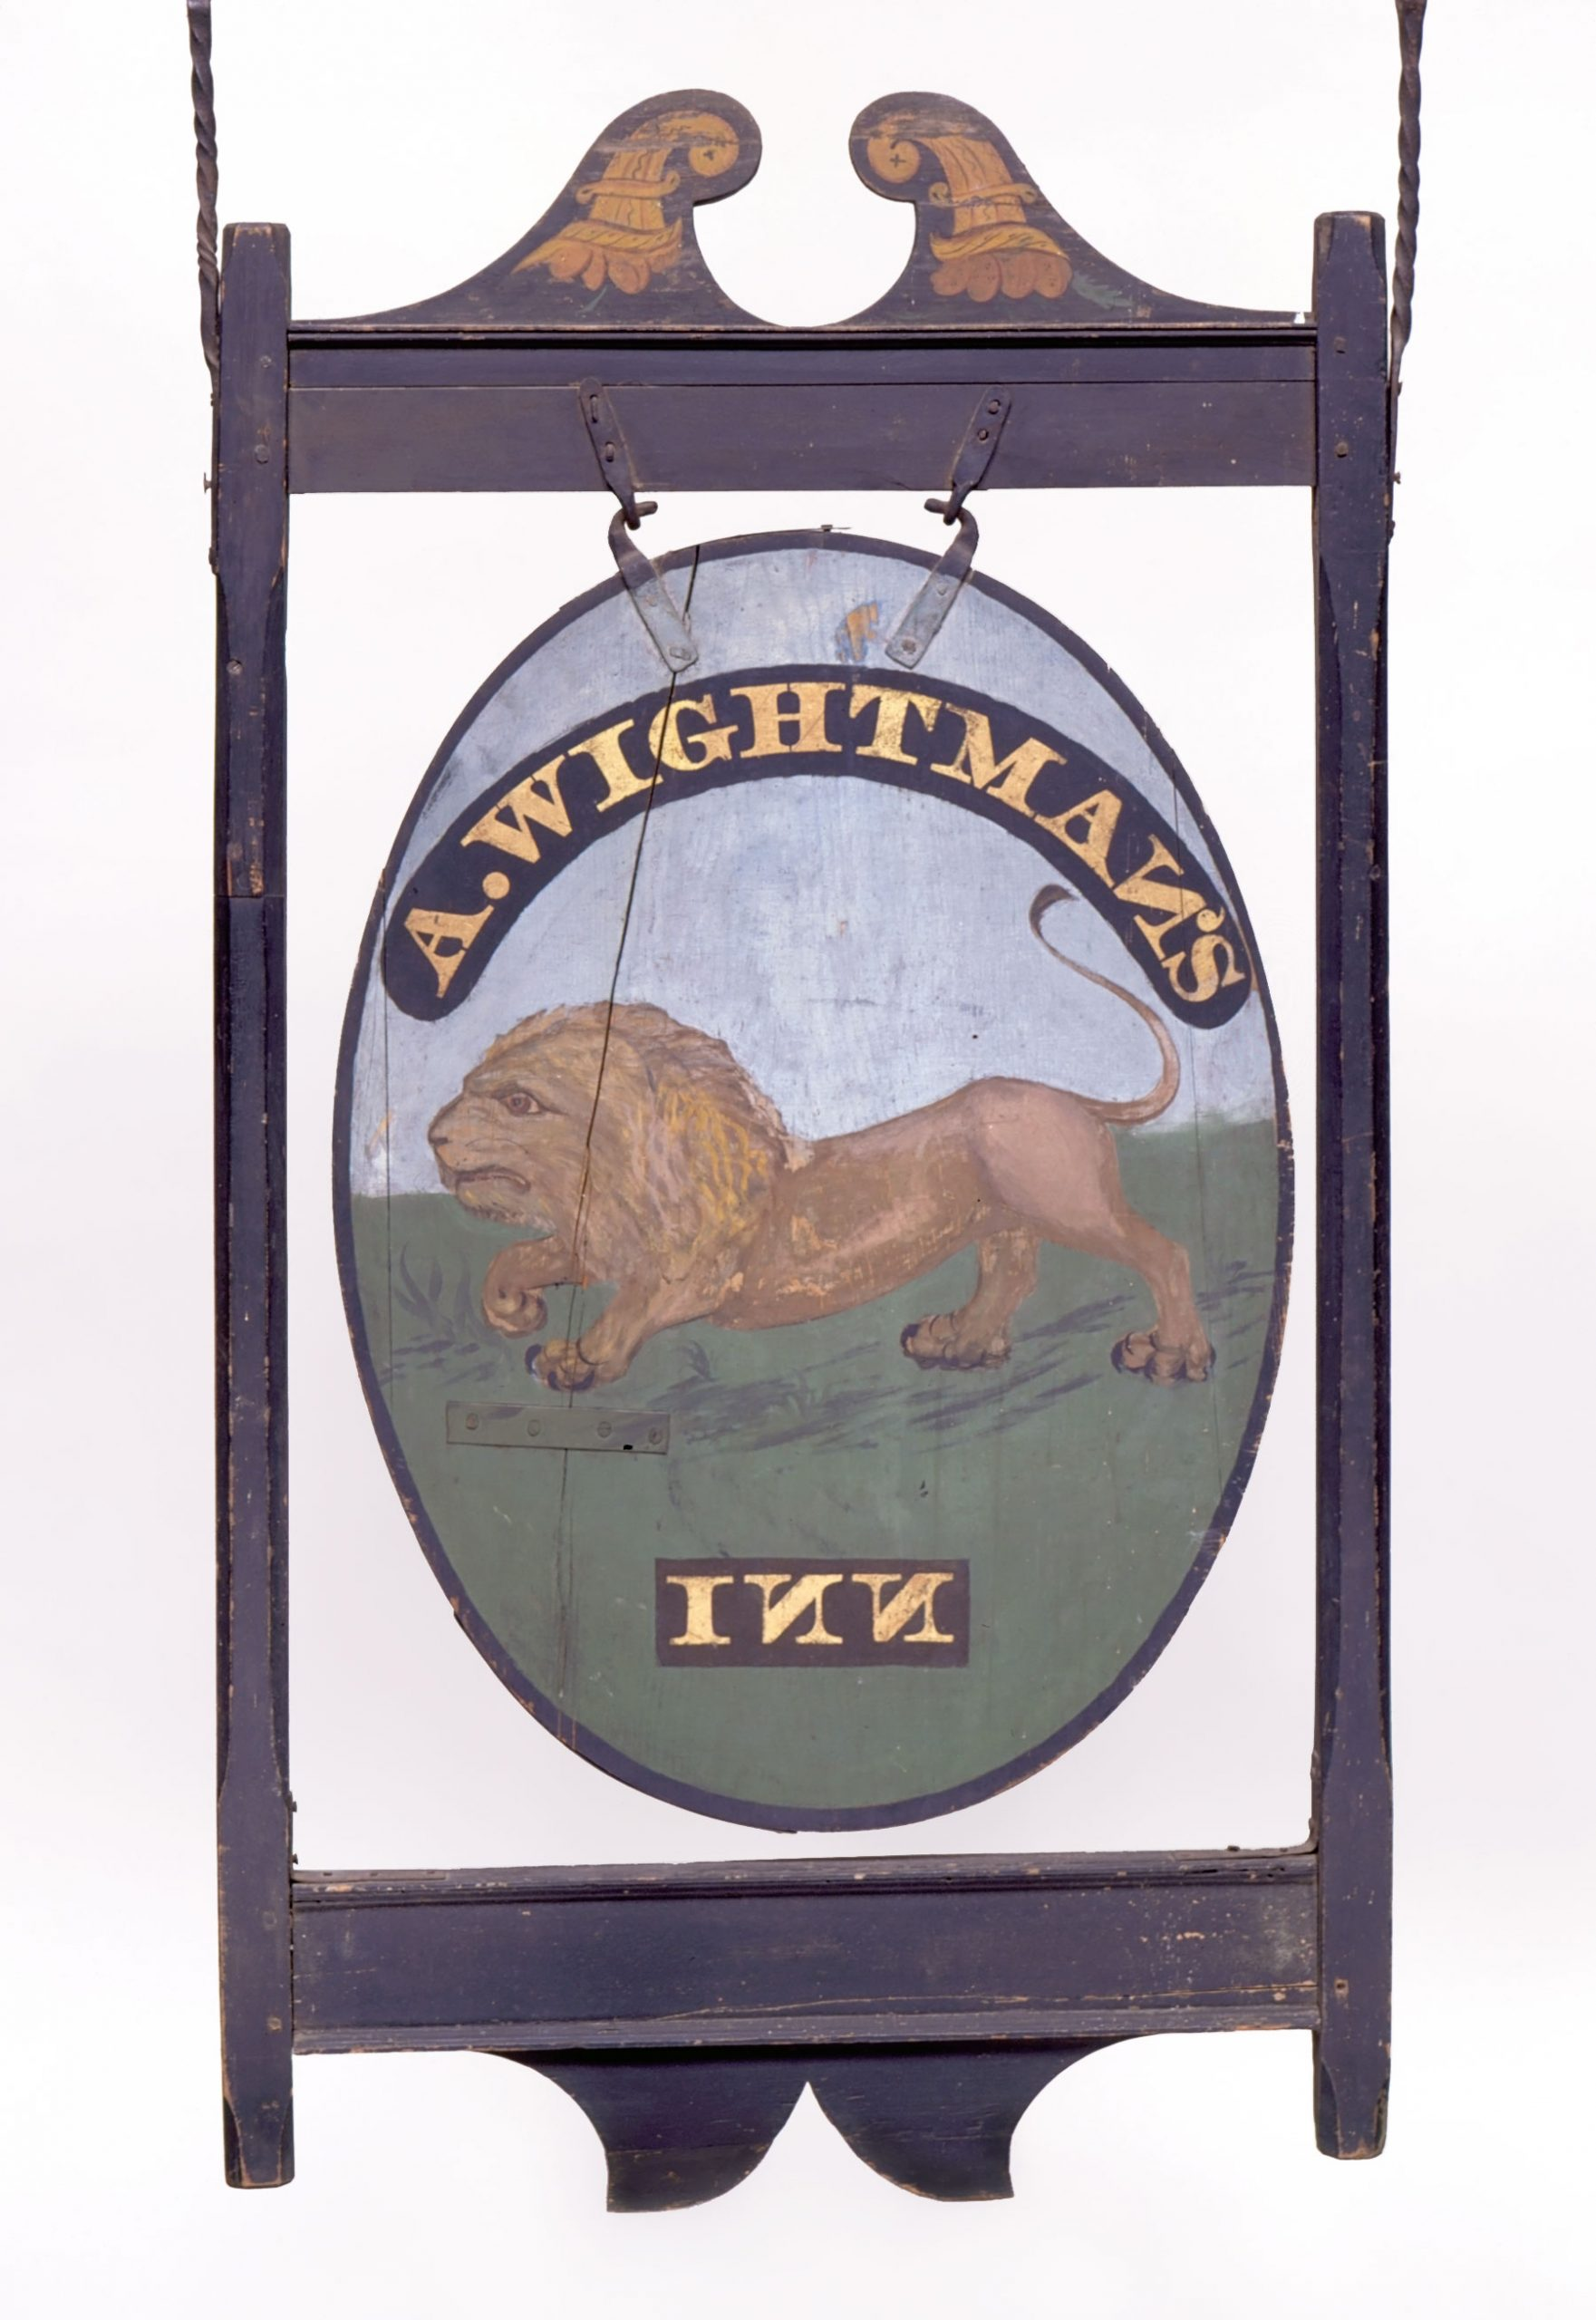 Sign for <em>Wightman's Inn</em>, ca. 1815-1824, Waterford, Connecticut (Quaker Hill section). Paint on pine board and frame, sand, gold leaf, iron hardware, 55 ¾ x 31 in. Innholder: Asa Wightman (active 1815-1836); Mercy Smith Wightman (active 1836-1839). Maker unknown. Connecticut Historical Society, Hartford, Connecticut. Collection of Morgan B. Brainard, Gift of Mrs. Morgan B. Brainard, 1961.63.51.